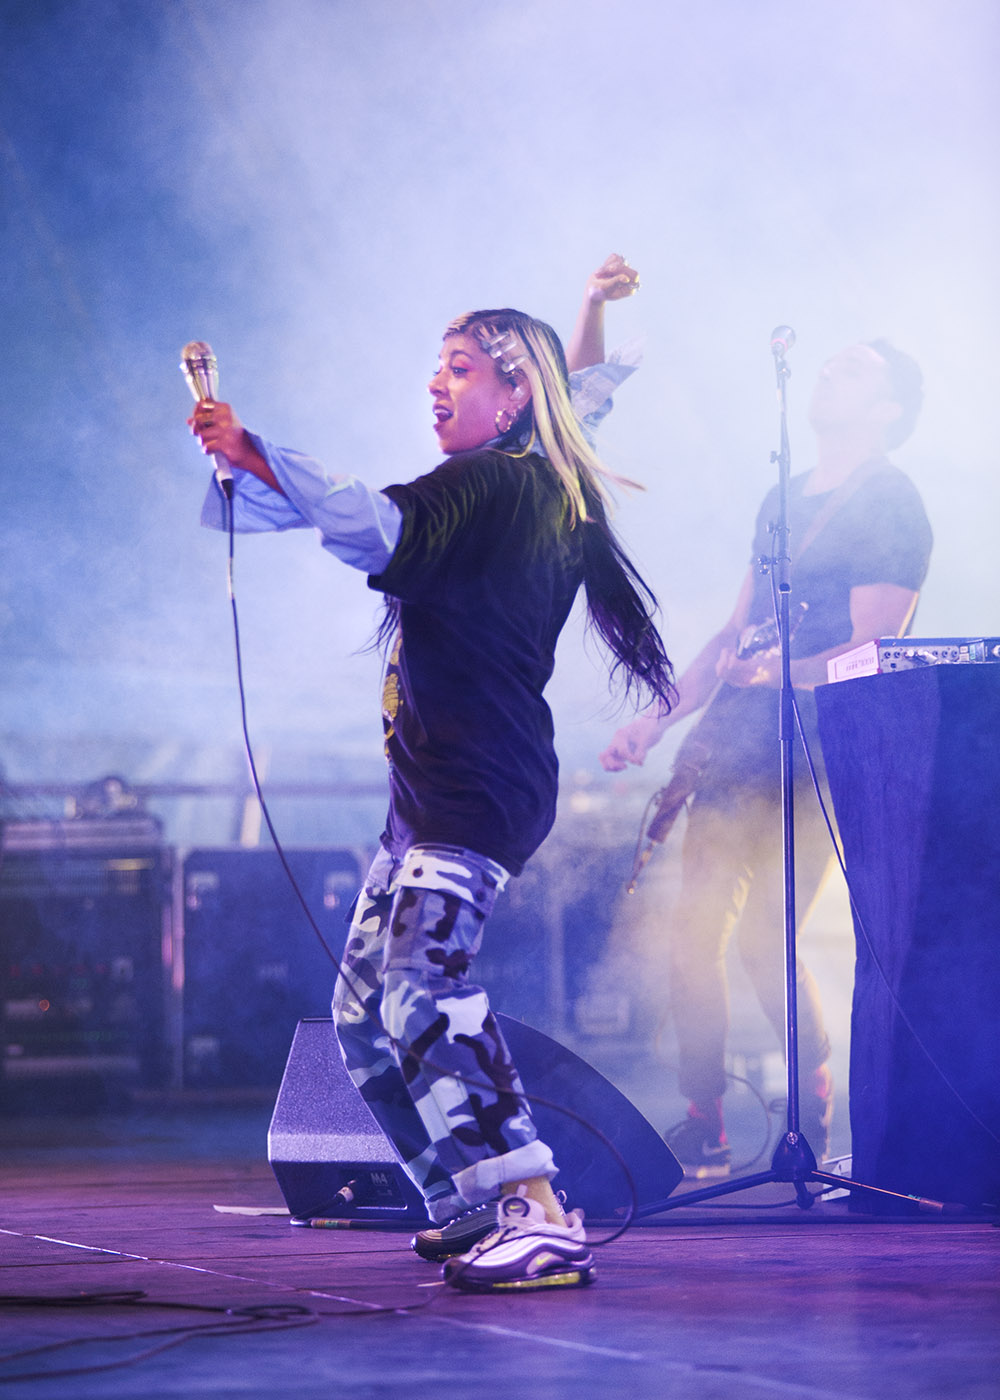 Ecca Vandal performs at the 25th annual Falls Music and Arts Festival in Lorne. Image: Kirsty Umback.